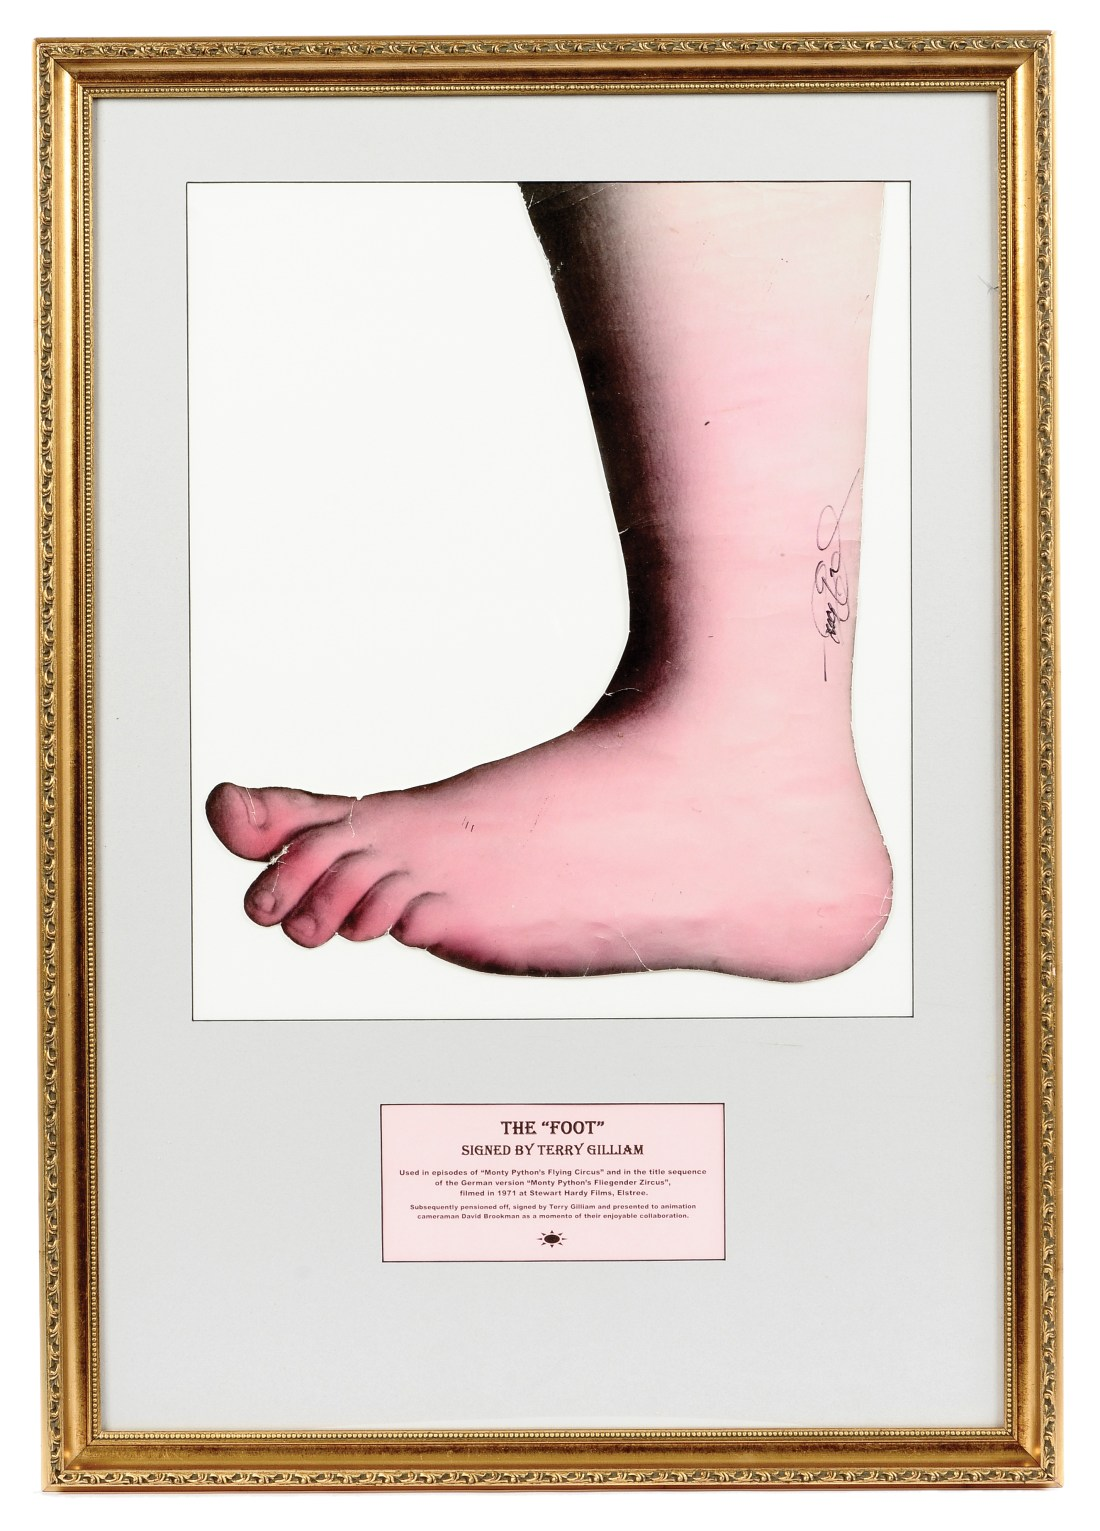 The Foot, aka the Monty Python foot, a paper cutout from an Old Master painting that Terry Gilliam blew up and used in the opening credits of Monty Python's Flying Circus. He signed this example on its ankle.